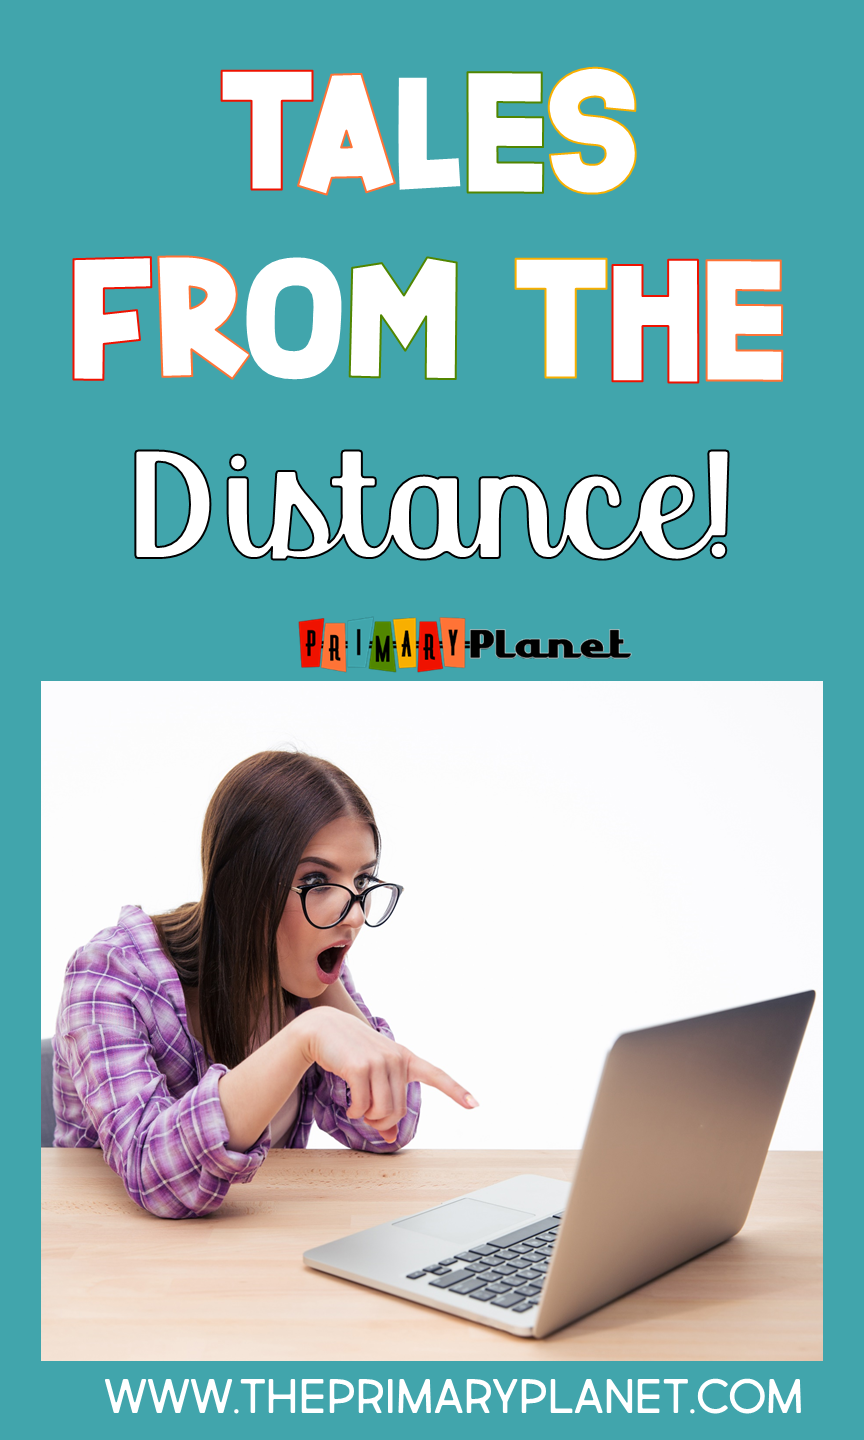 Tales from the Distance: Image of woman on the computer.